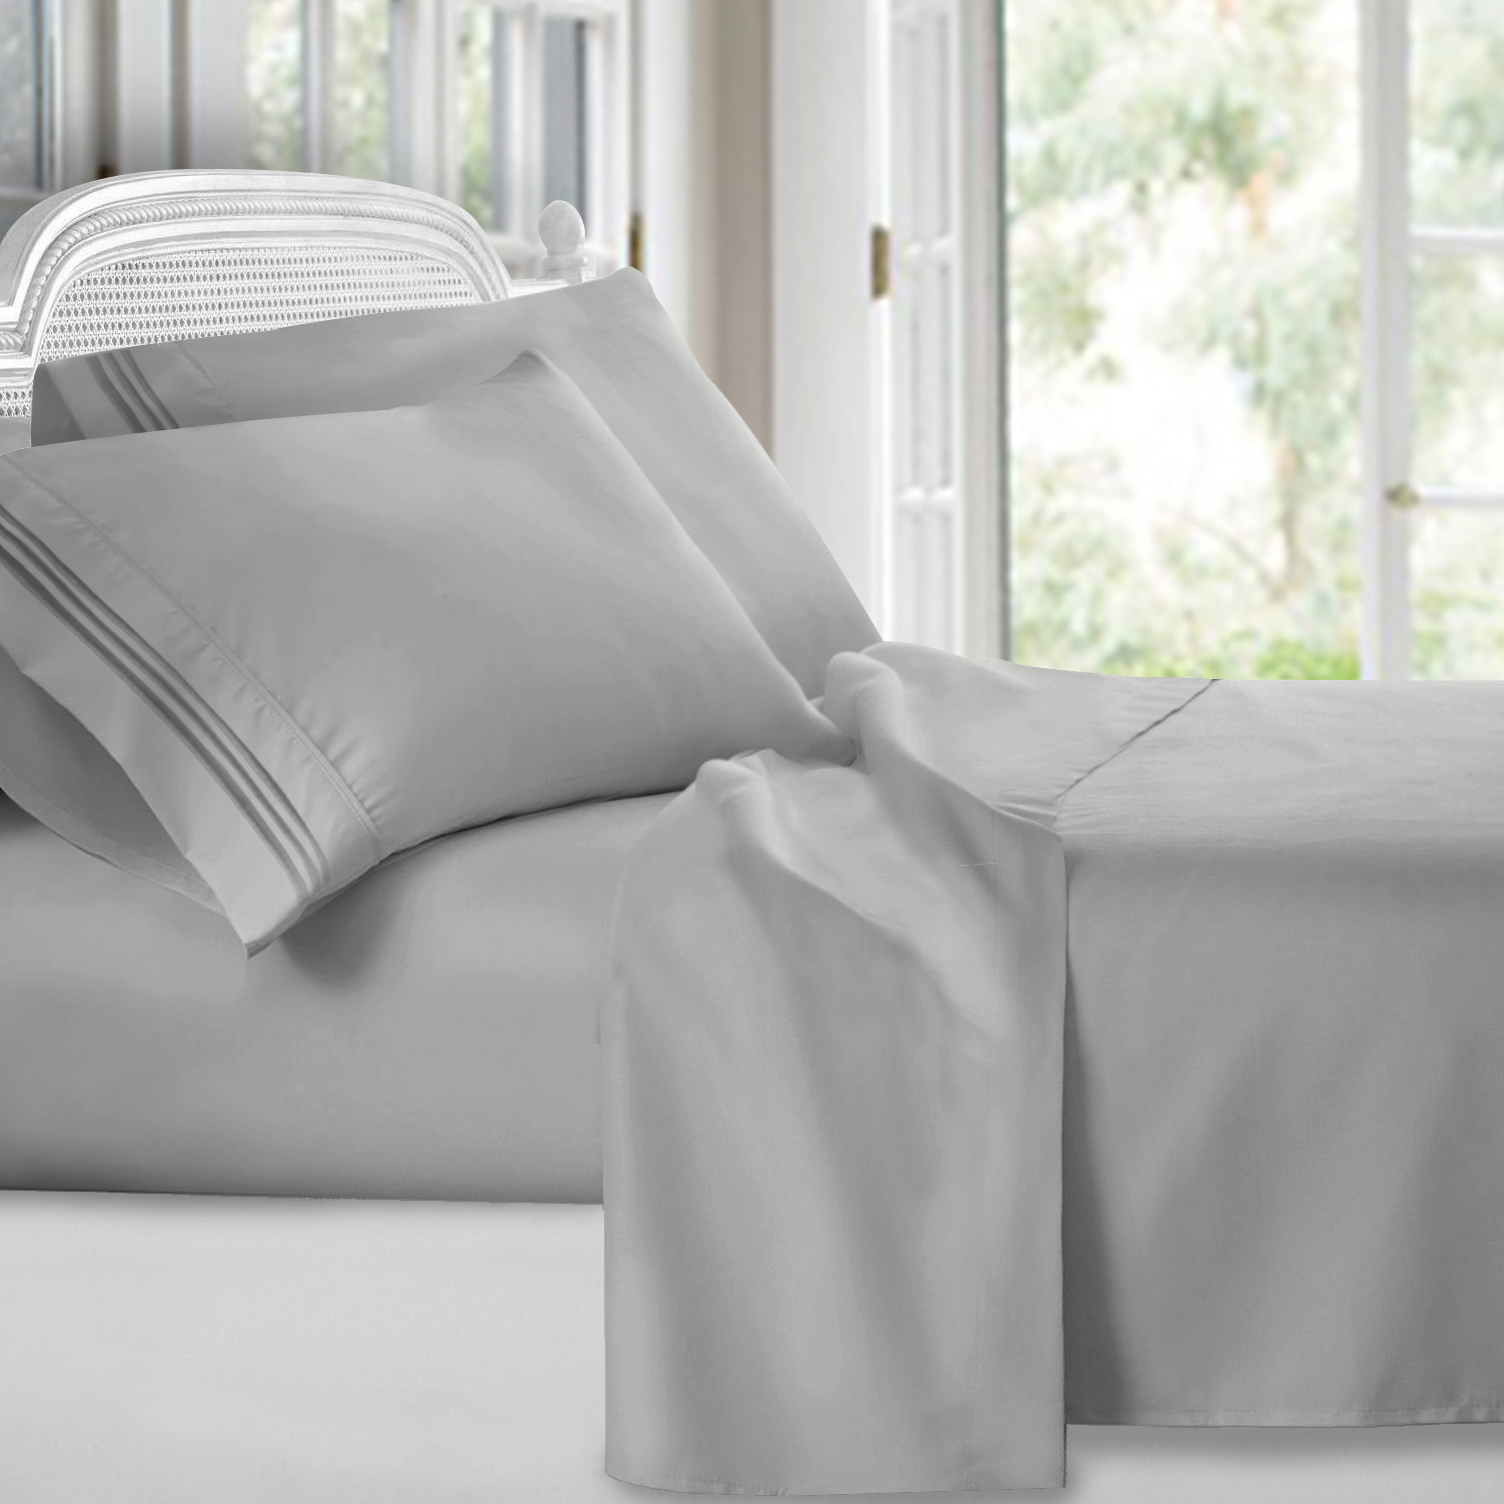 Clara Clark 1800 Series Deep Pocket 4pc Bed Sheet Set Queen Size, Silver Light Gray